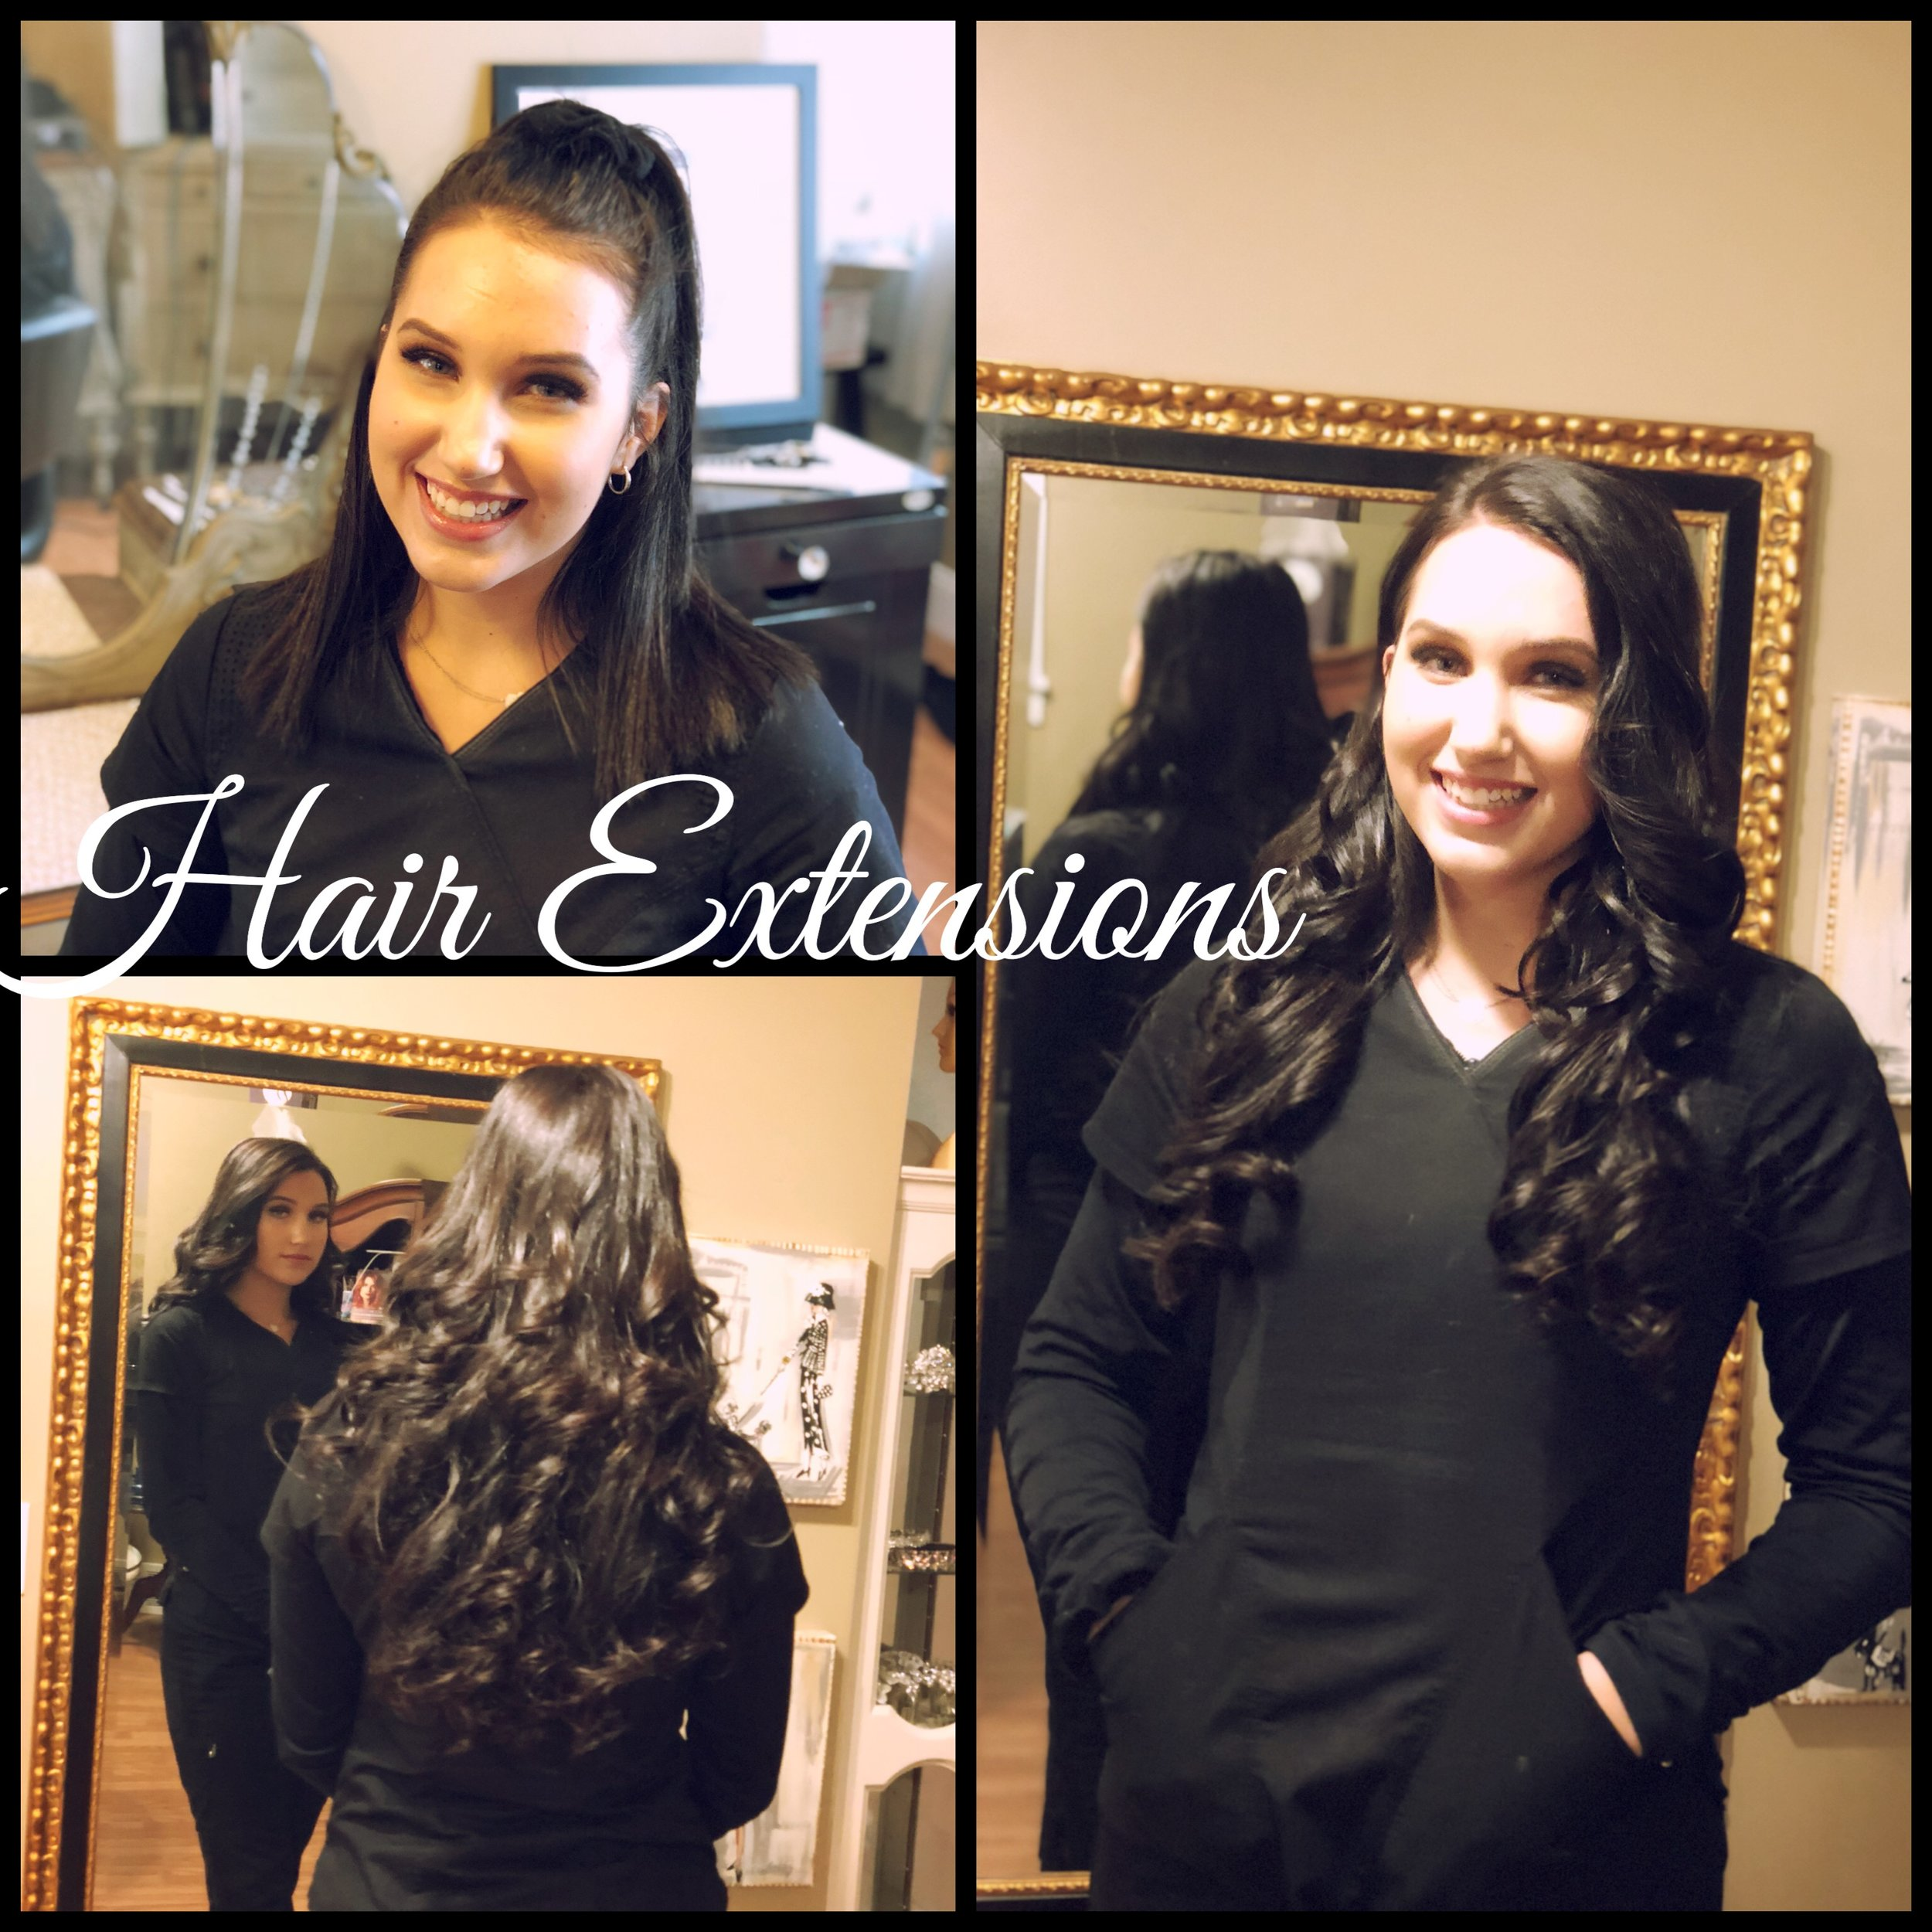 hair pieces & extensions - Premium human hair tape-in extensions by HotHeads and Platinum Seamless. The best in hair extensions. Also clip-in premium human remy hair extensions also available. To add the extra length and/or volume whether it be for a temporary special occasion or for everyday gorgeous hair.